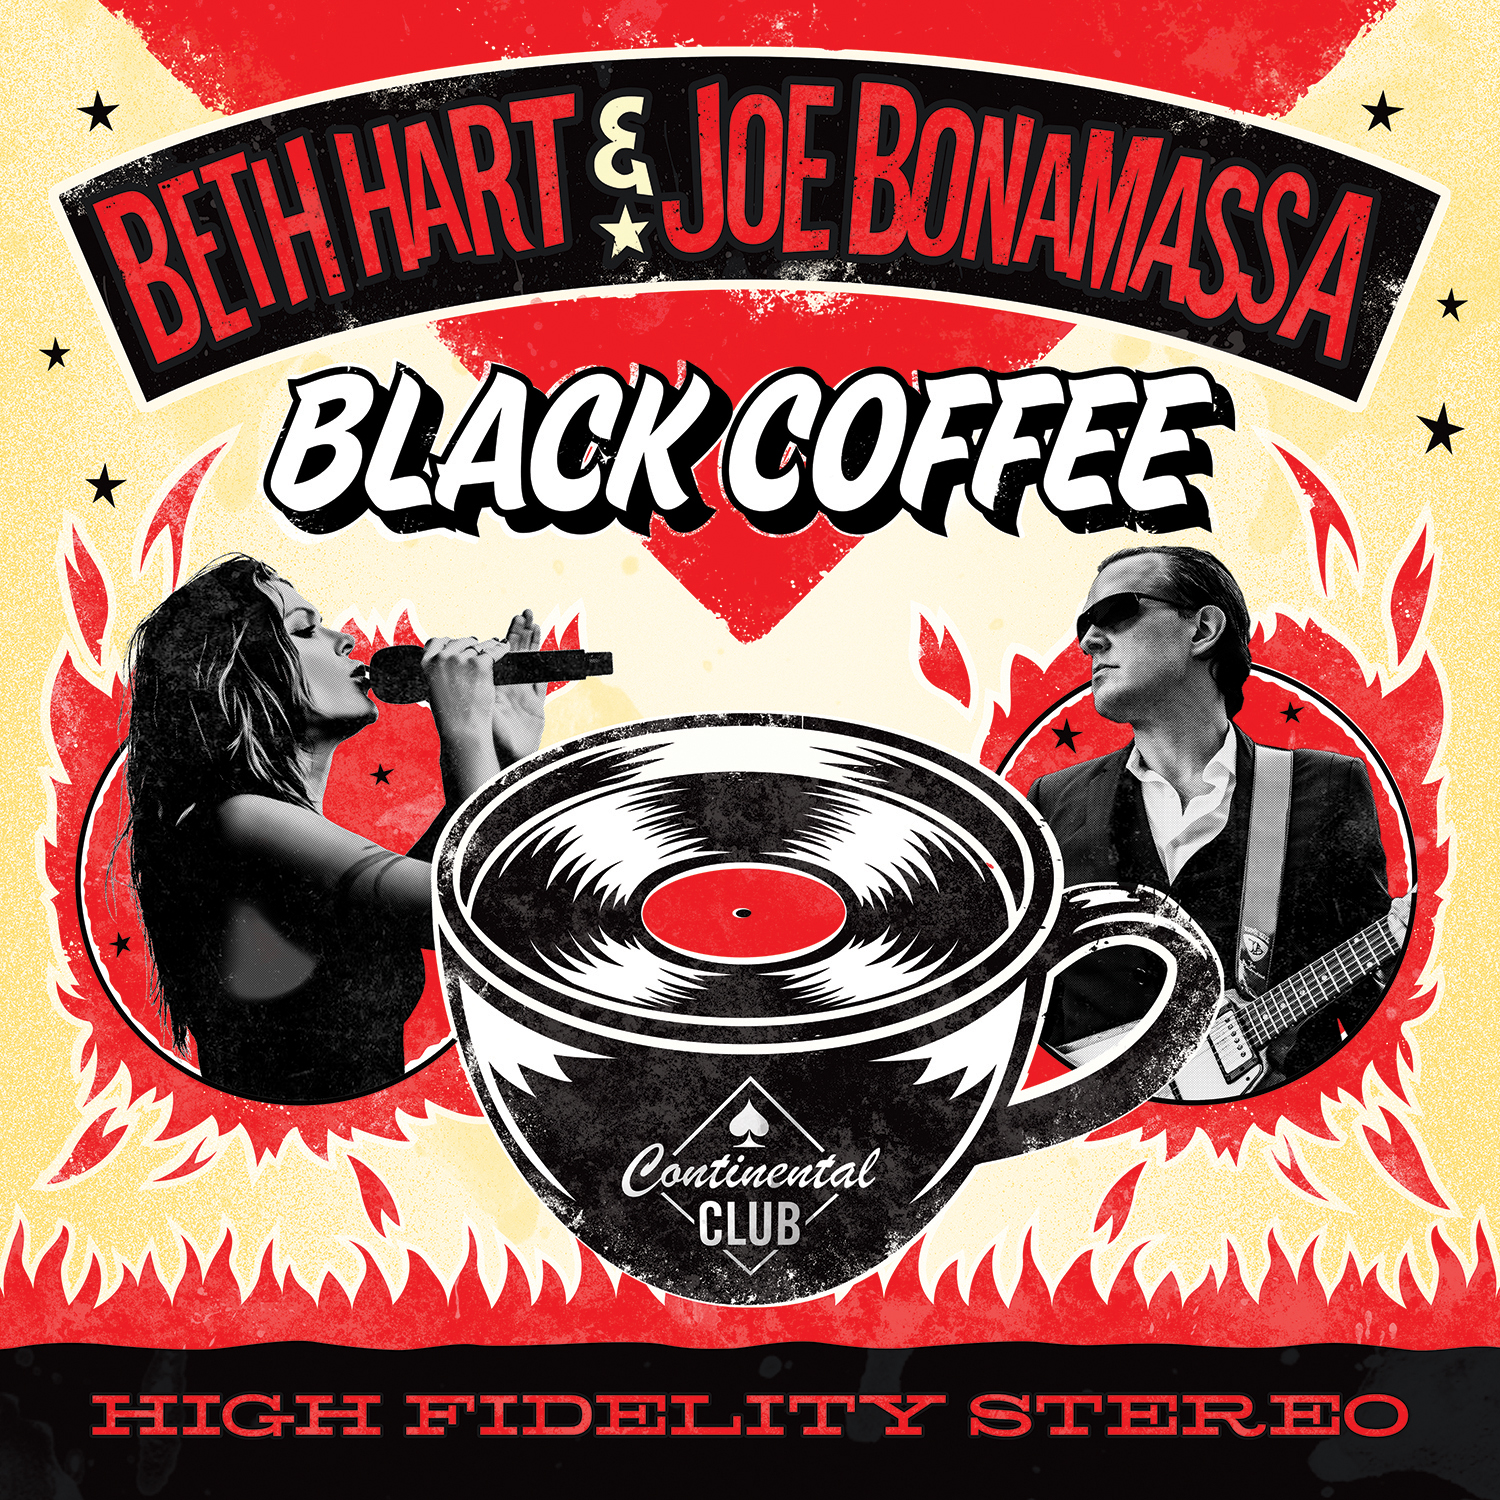 <h5>Beth & Joe<br>Black Coffee</h5>